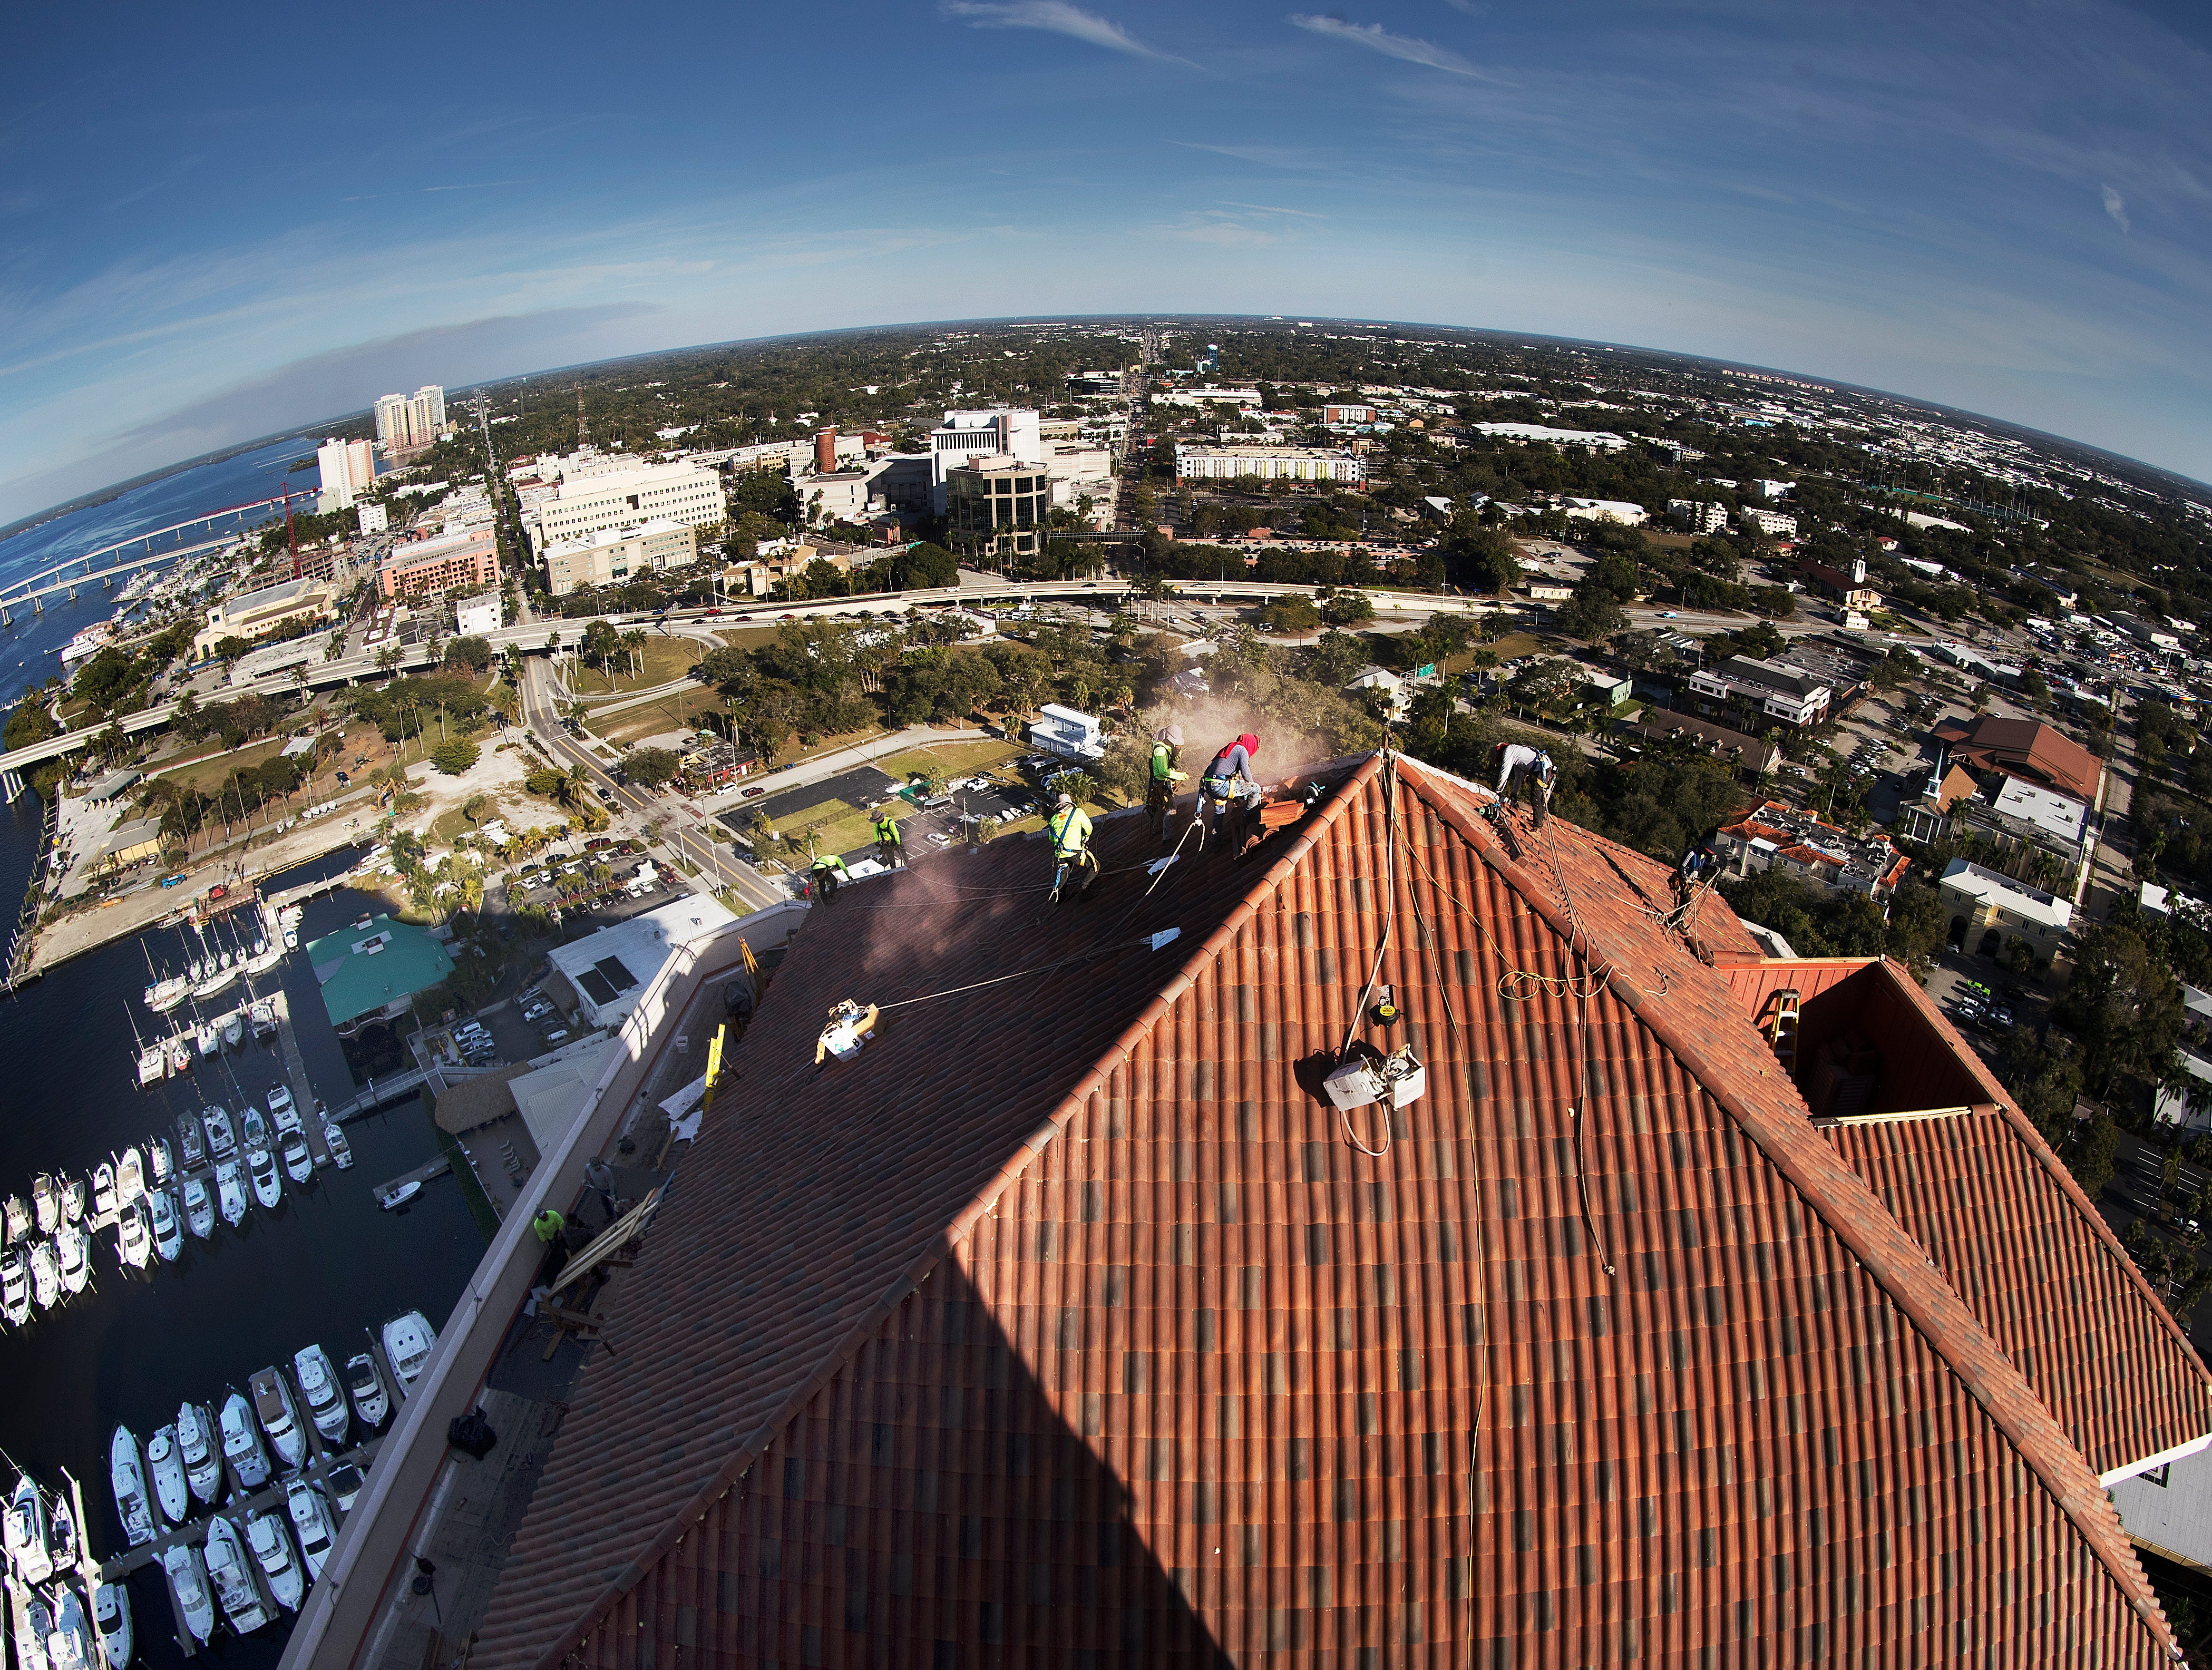 The roof of High Point Place in downtown Fort Myers is being replaced after it was damaged by Hurricane Irma in 2017. The tallest of five buildings stand at 32 stories high and are the highwar buildings between Miami and Tampa. The roof on all the buildings are being replaced by Crowther Roofing.